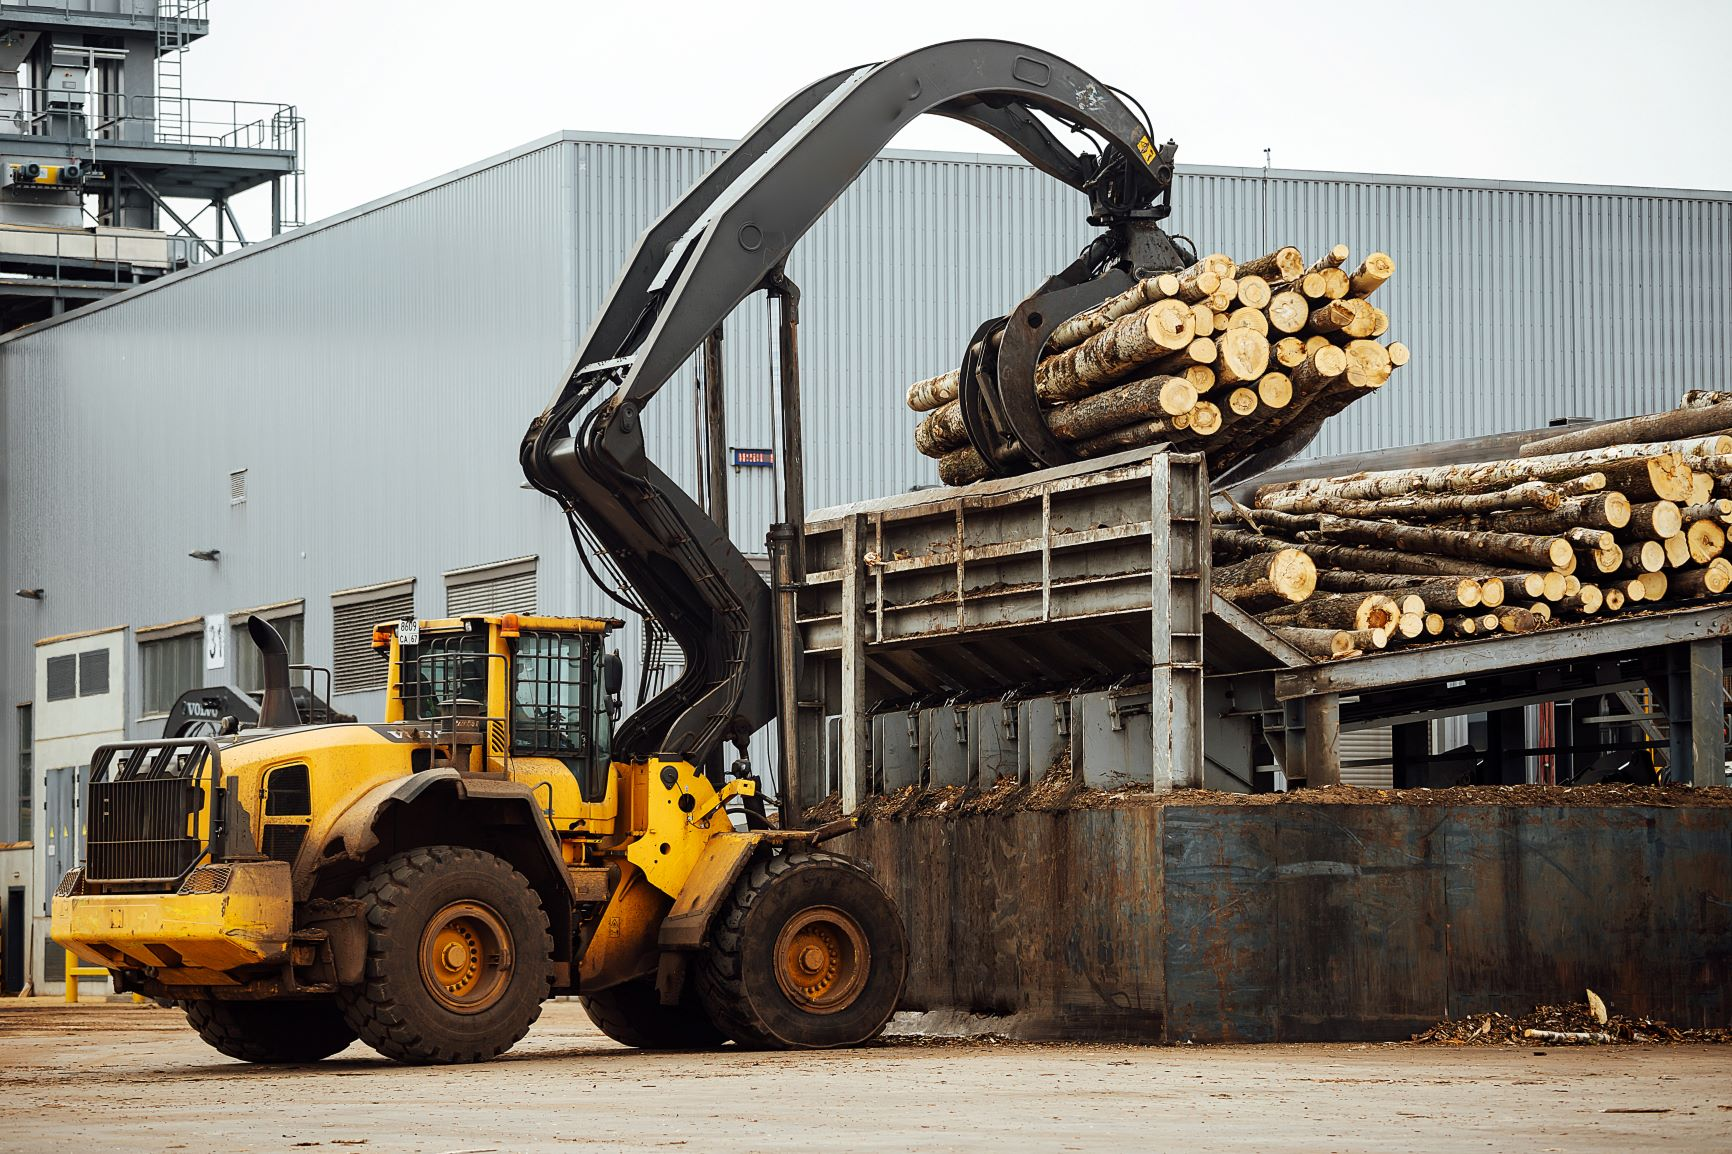 Essential Reads: The 2021 Lumber Shortage